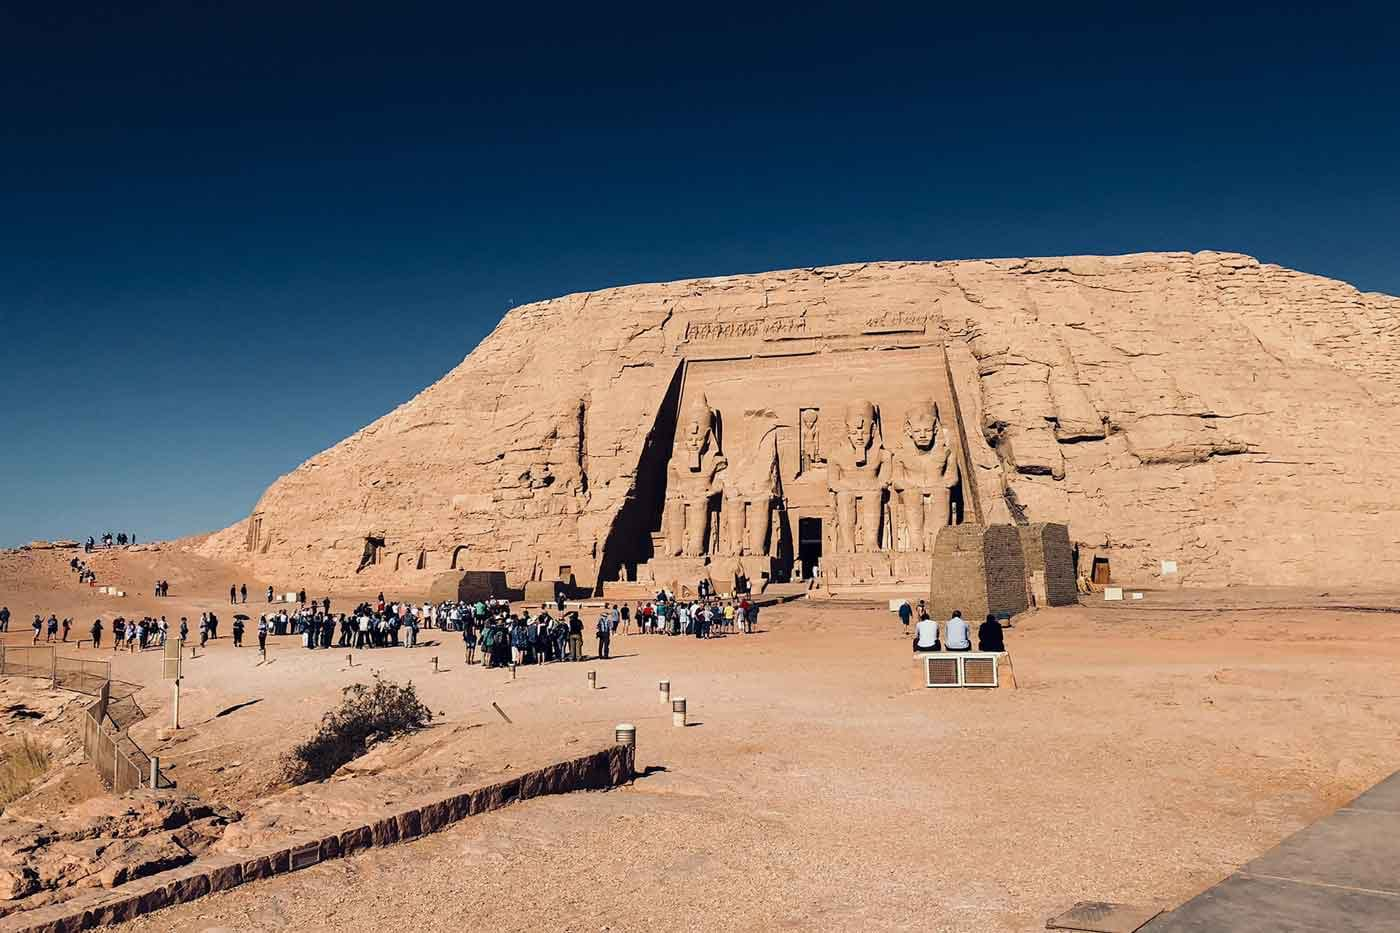 Photo of people on tour of Abu Simbel Temples in Egypt